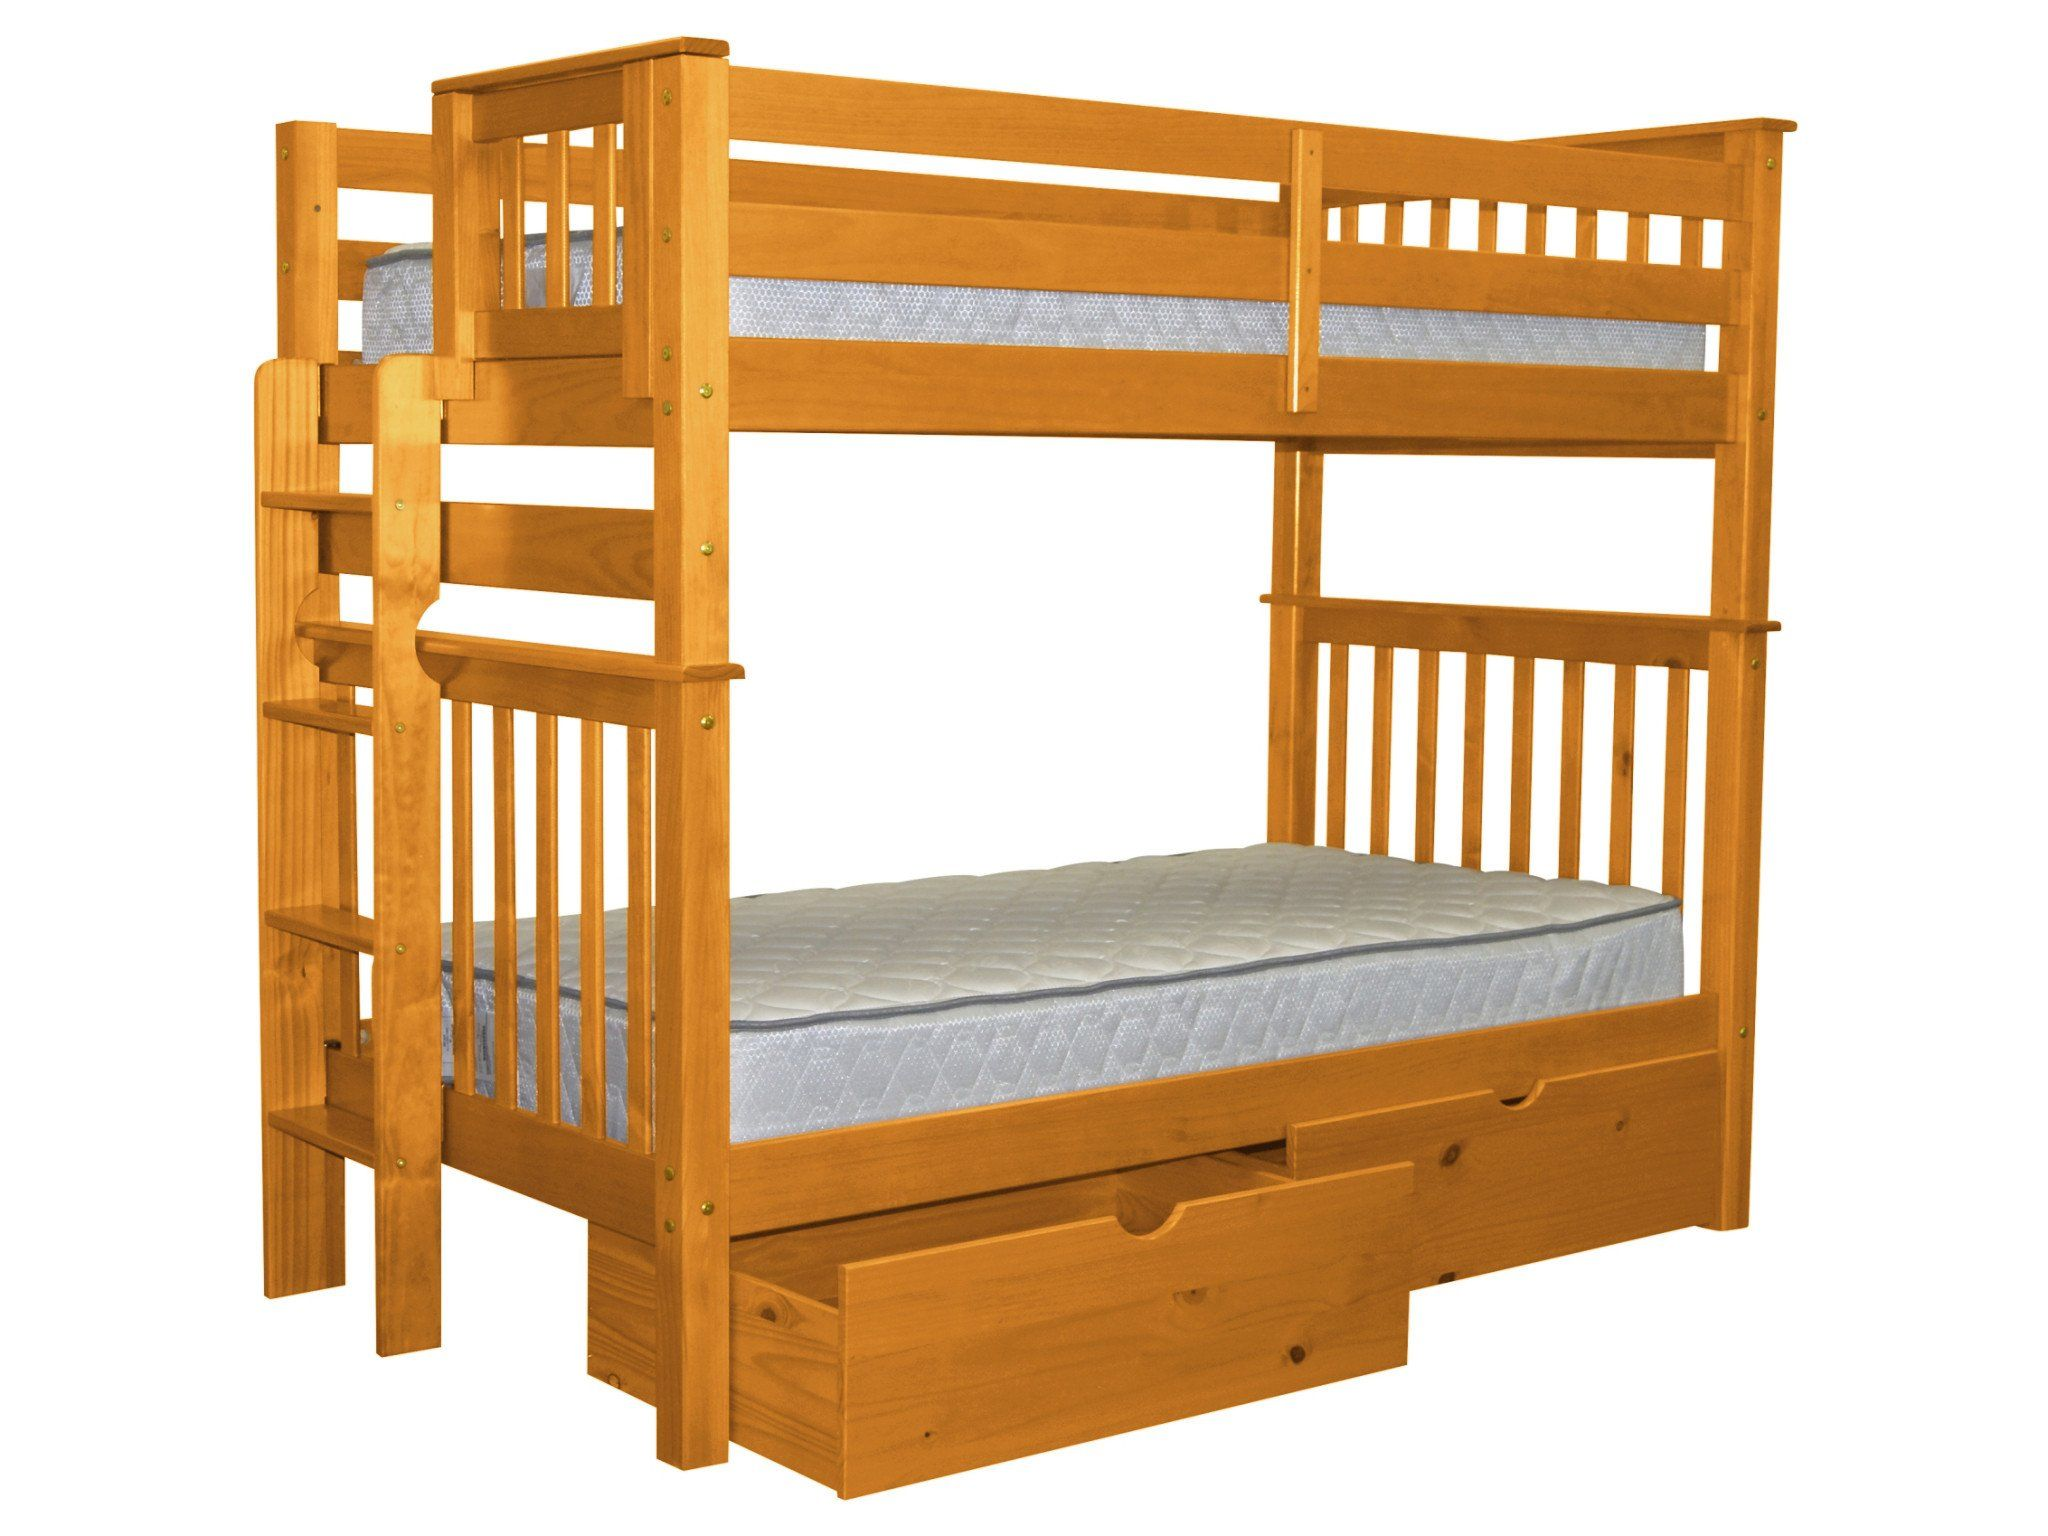 Bedz king tall mission style bunk bed twin over twin with end ladder